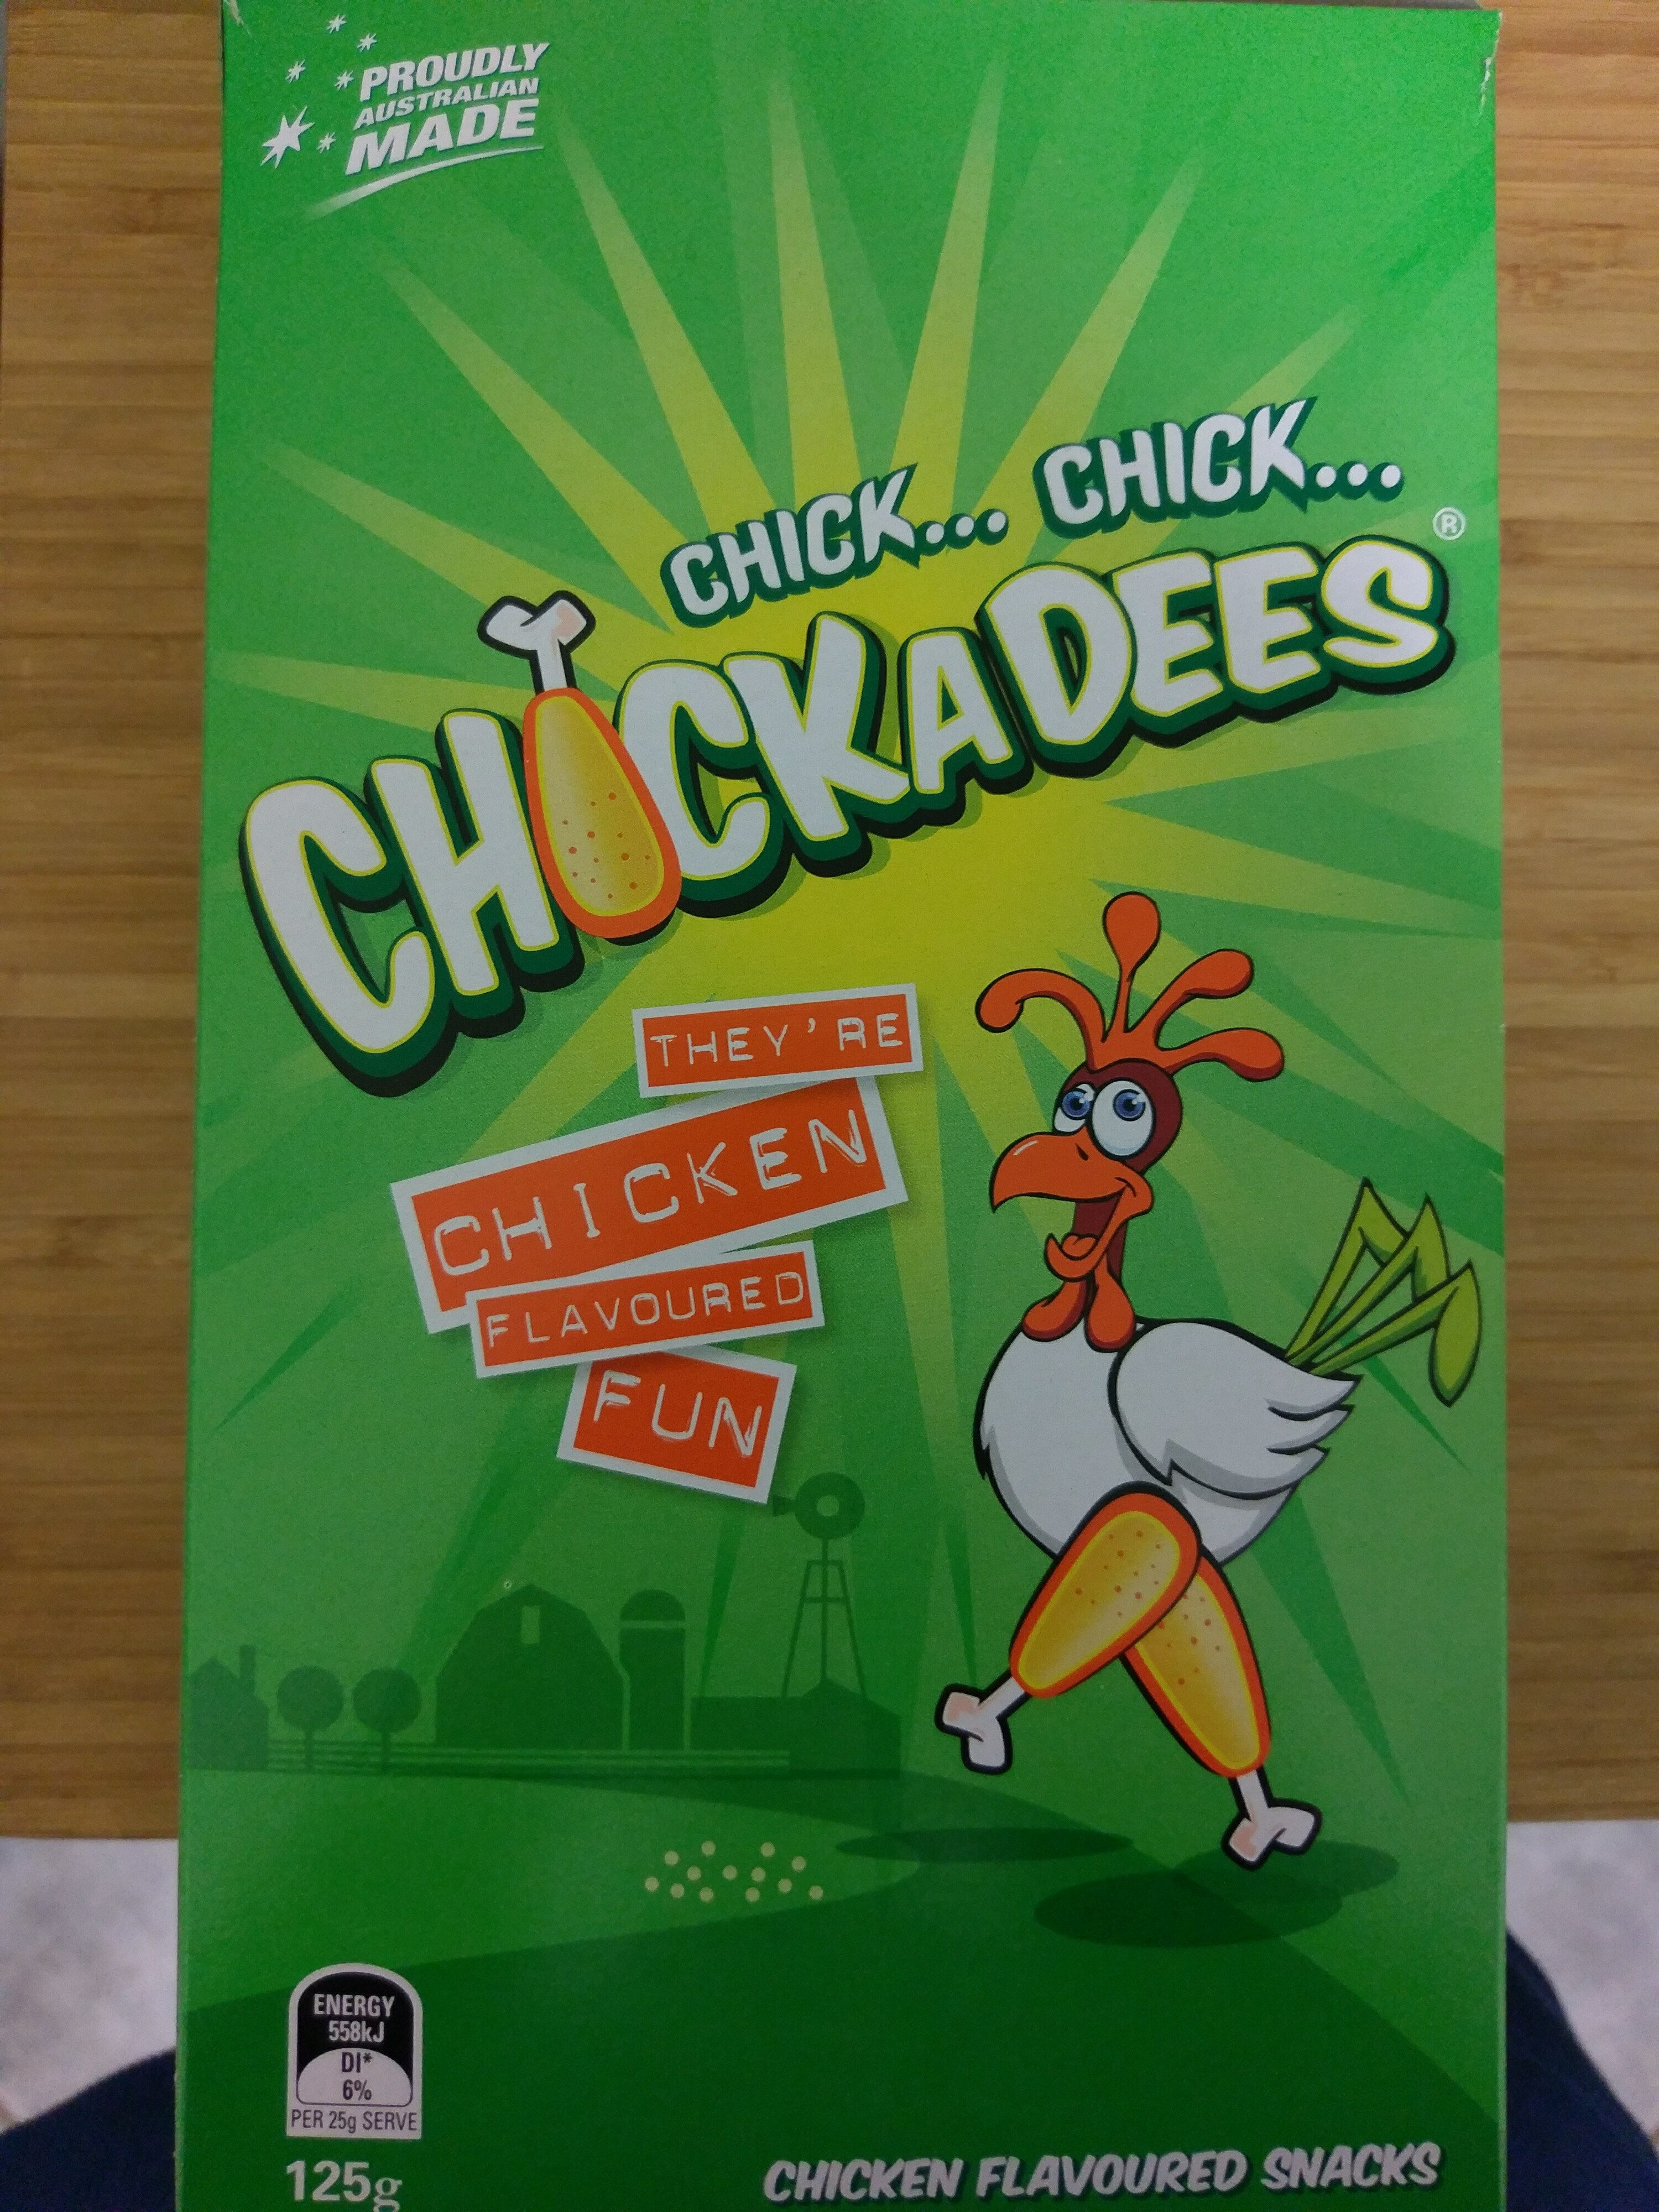 Chick Chick Chickadees - Product - en